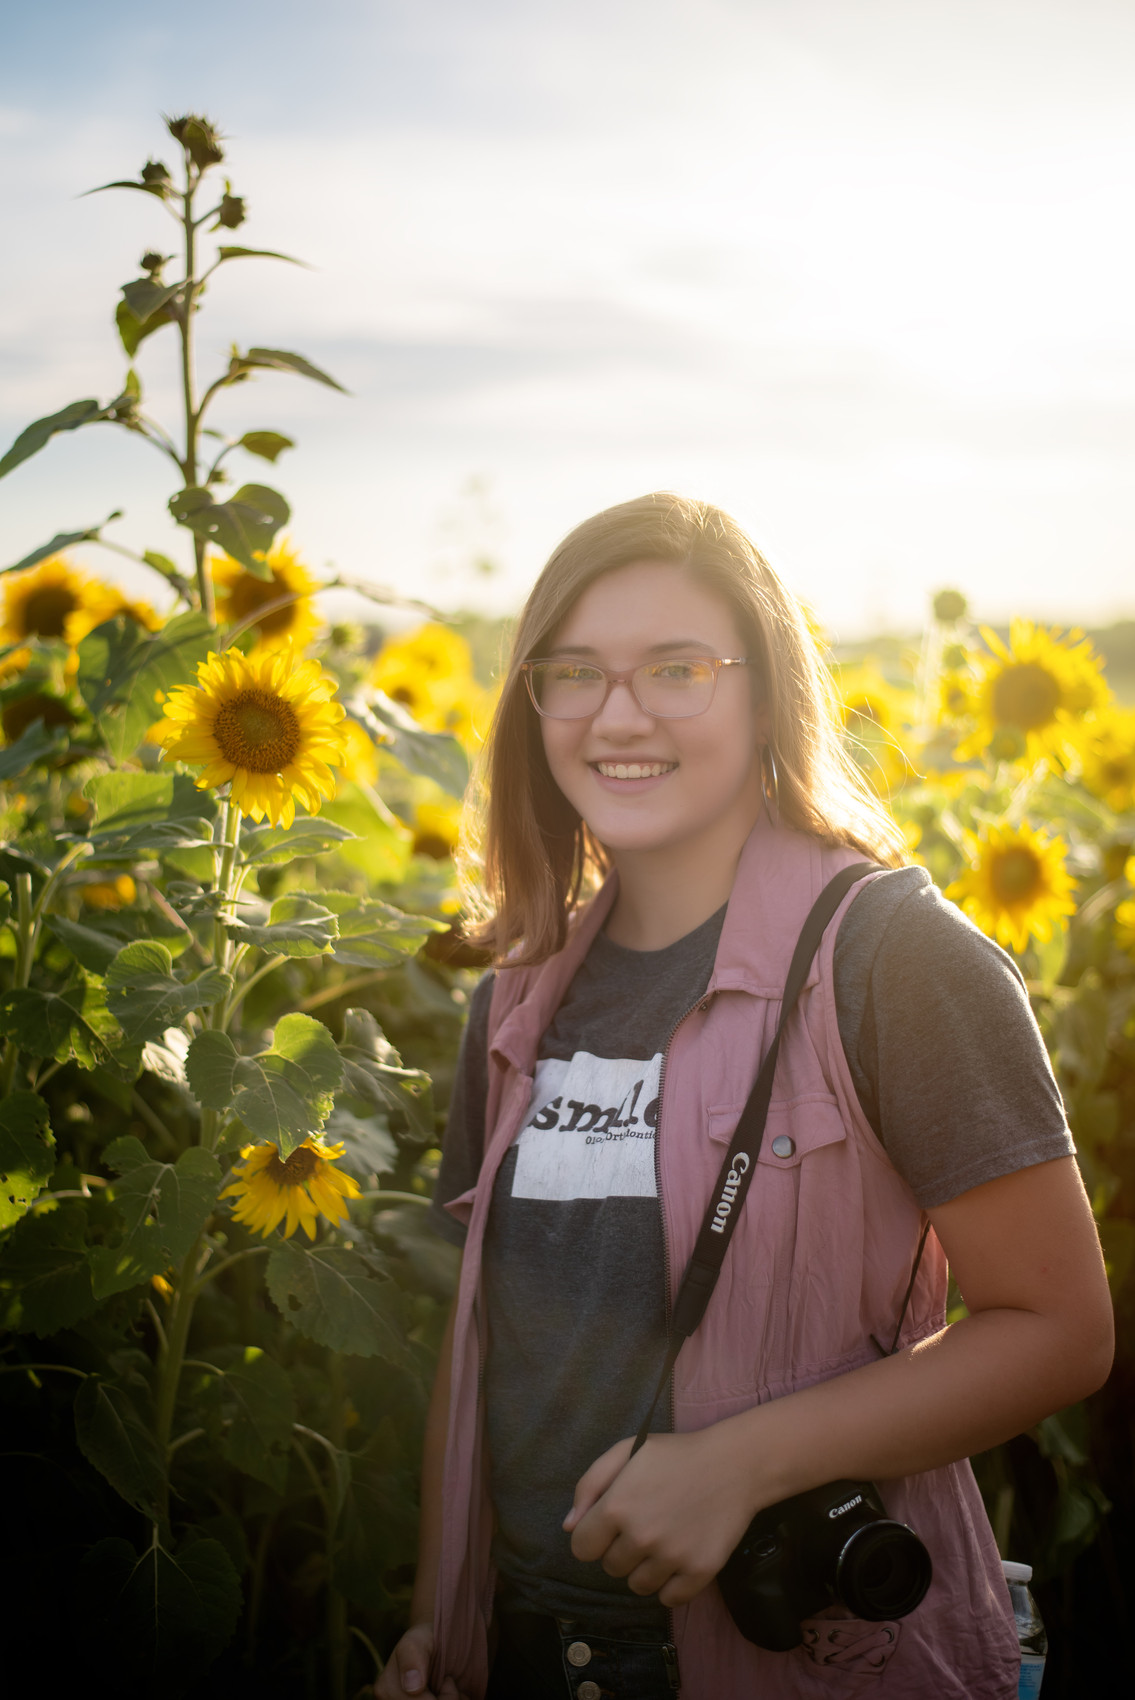 teen smiling and posing in sunflower field at Nelson Produce in Valley, Nebraska